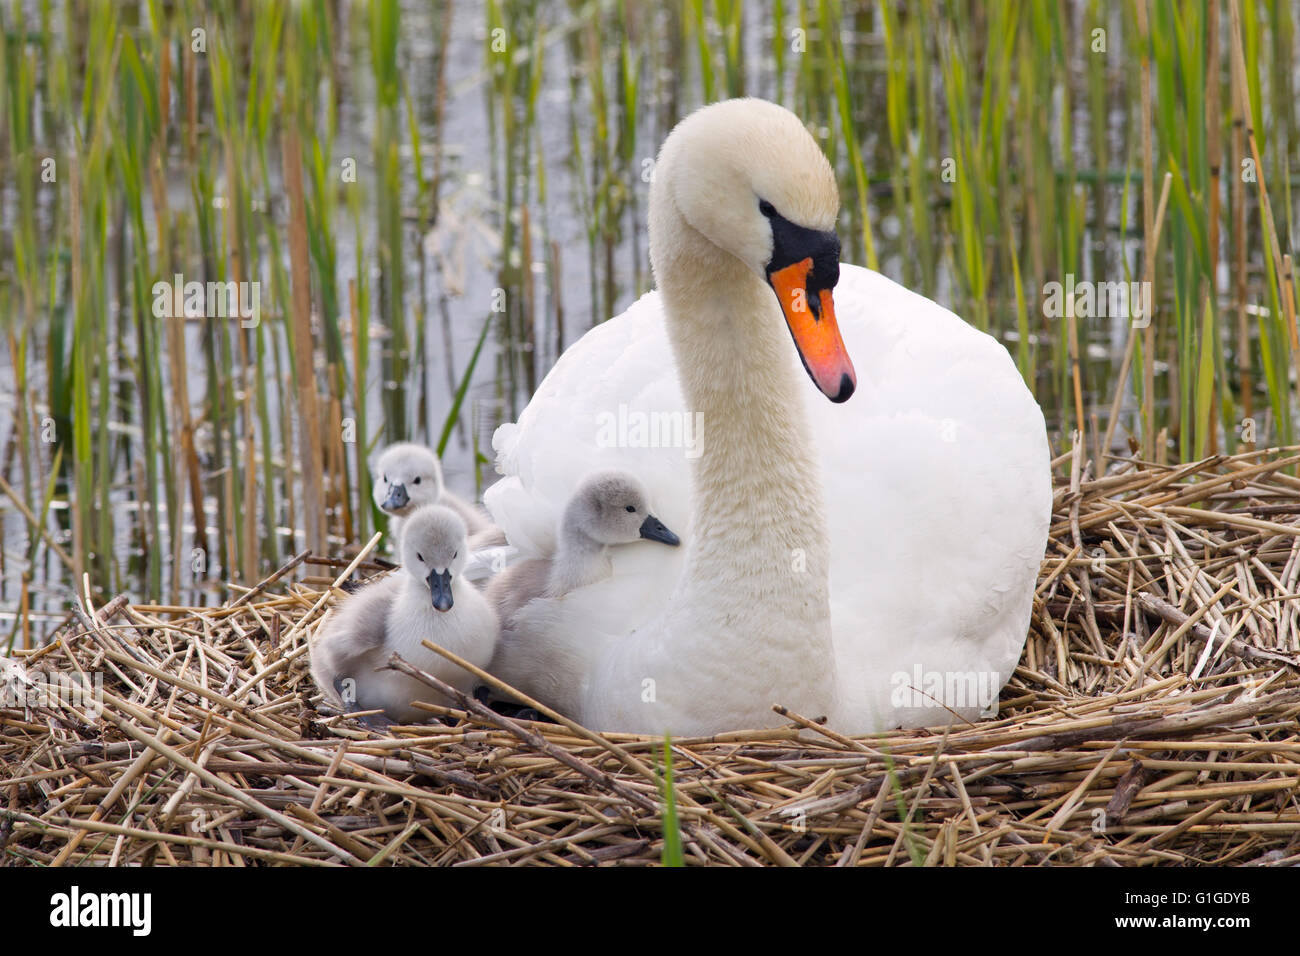 Mute Swan Cygnus olar on the nest with newly hatched Cygnets - Stock Image